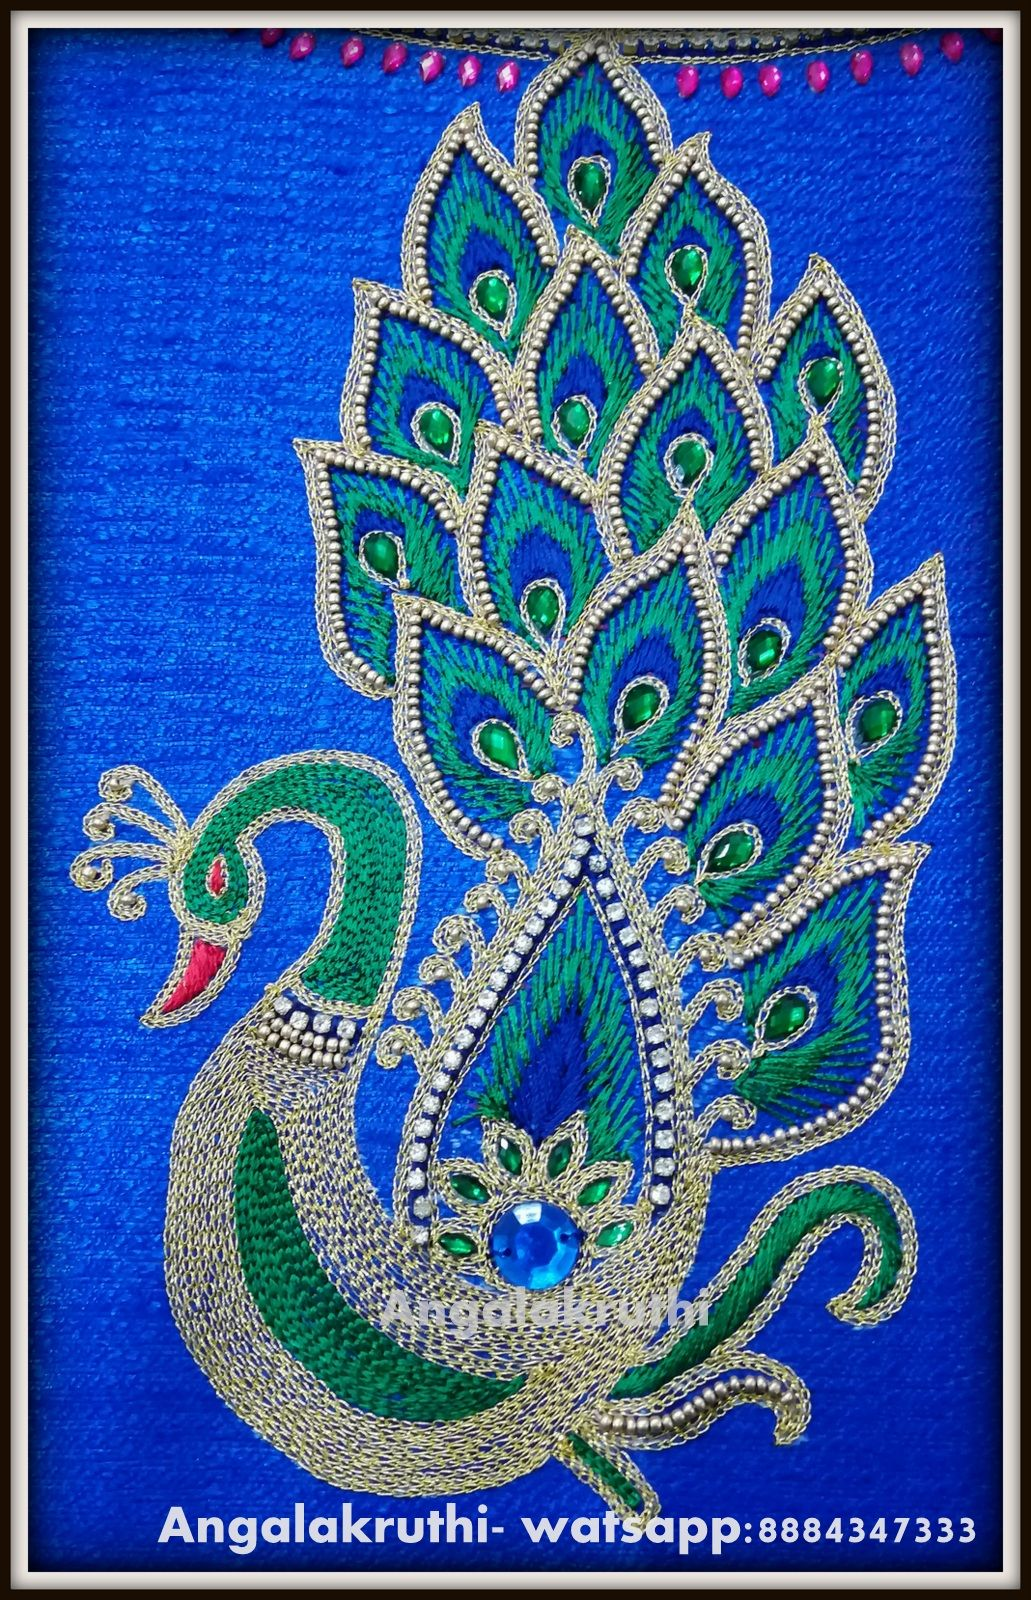 # Hand Embroidery Peacock Designs_Angalakruthi_Ladies_Boutique_Bangalore Wastapp8884347333 ...